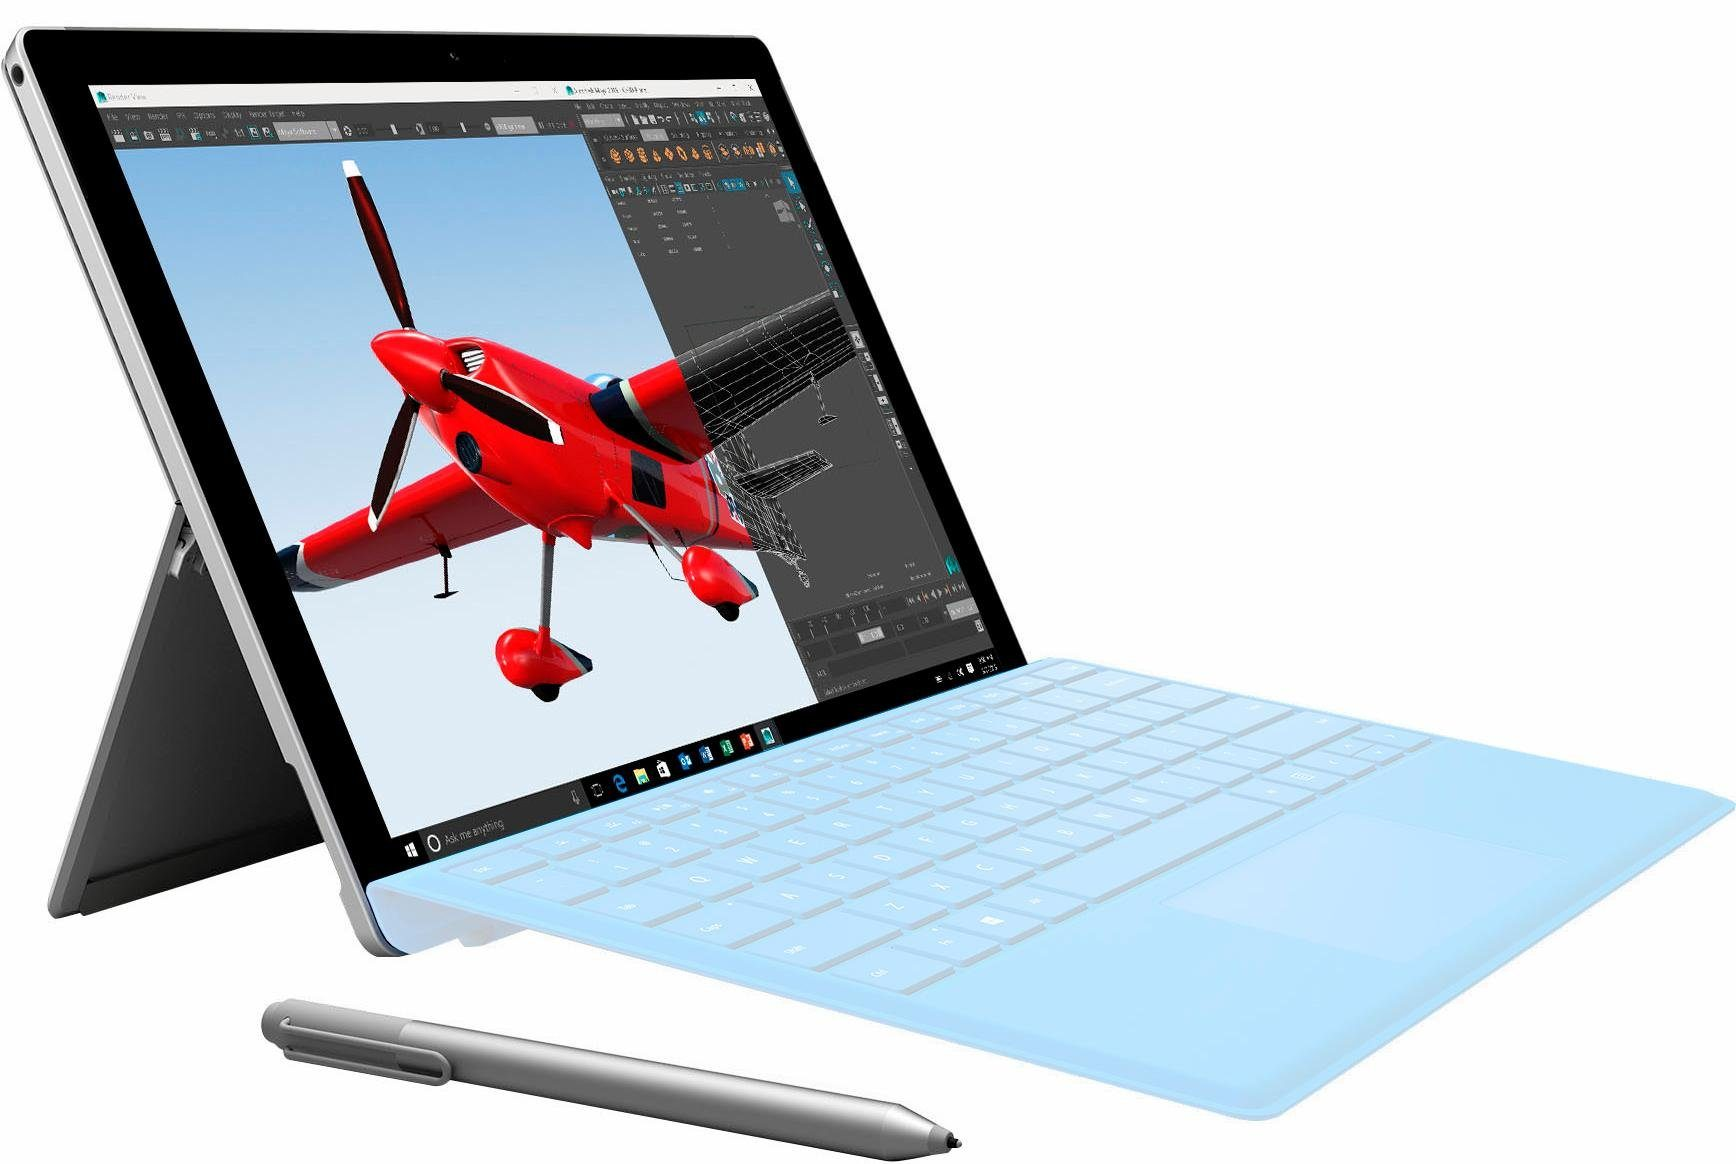 Microsoft Surface Pro 4 SU3-00003 Tablet-PC, Microsoft® Windows® 10 Pro, Intel Core m3